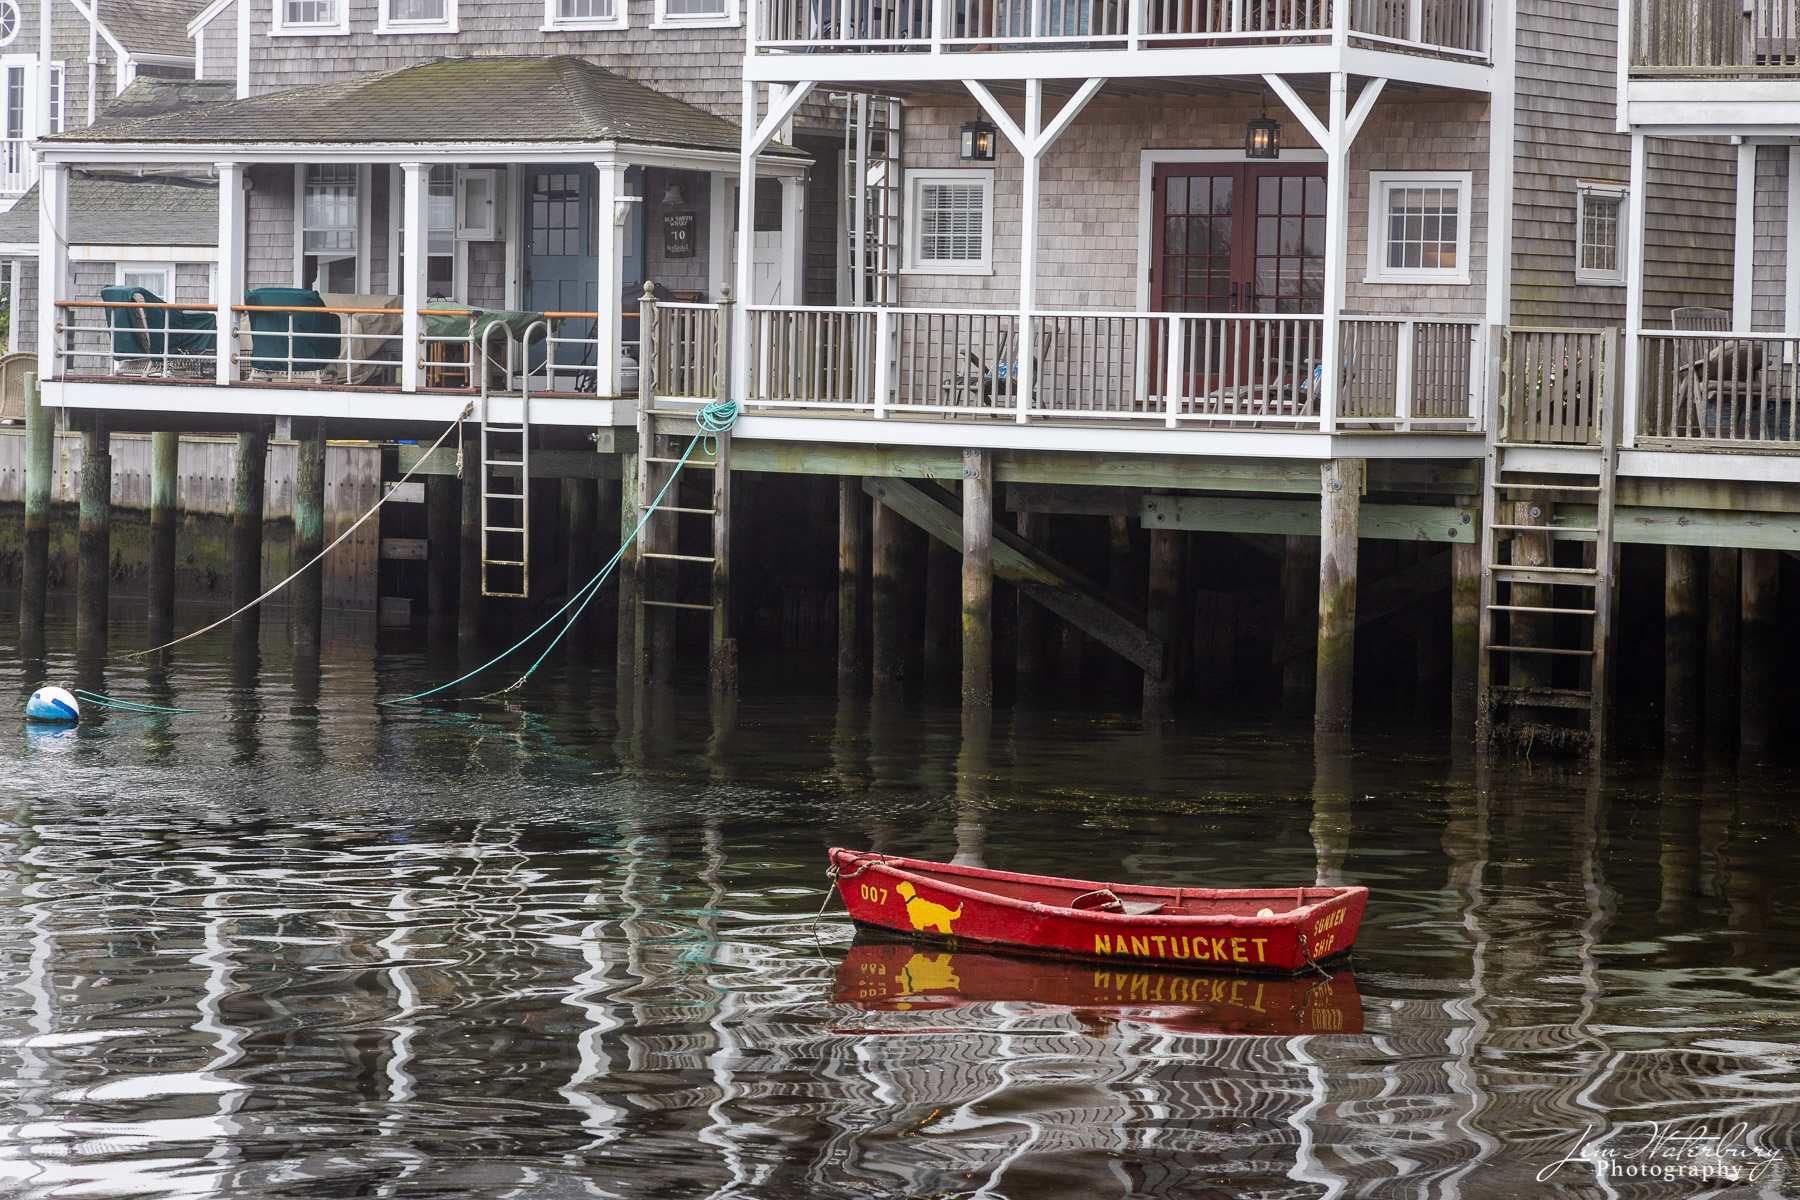 red, dinghy, Easy Street Boat Basis, Old North Wharf, reflections, Nantucket, photo